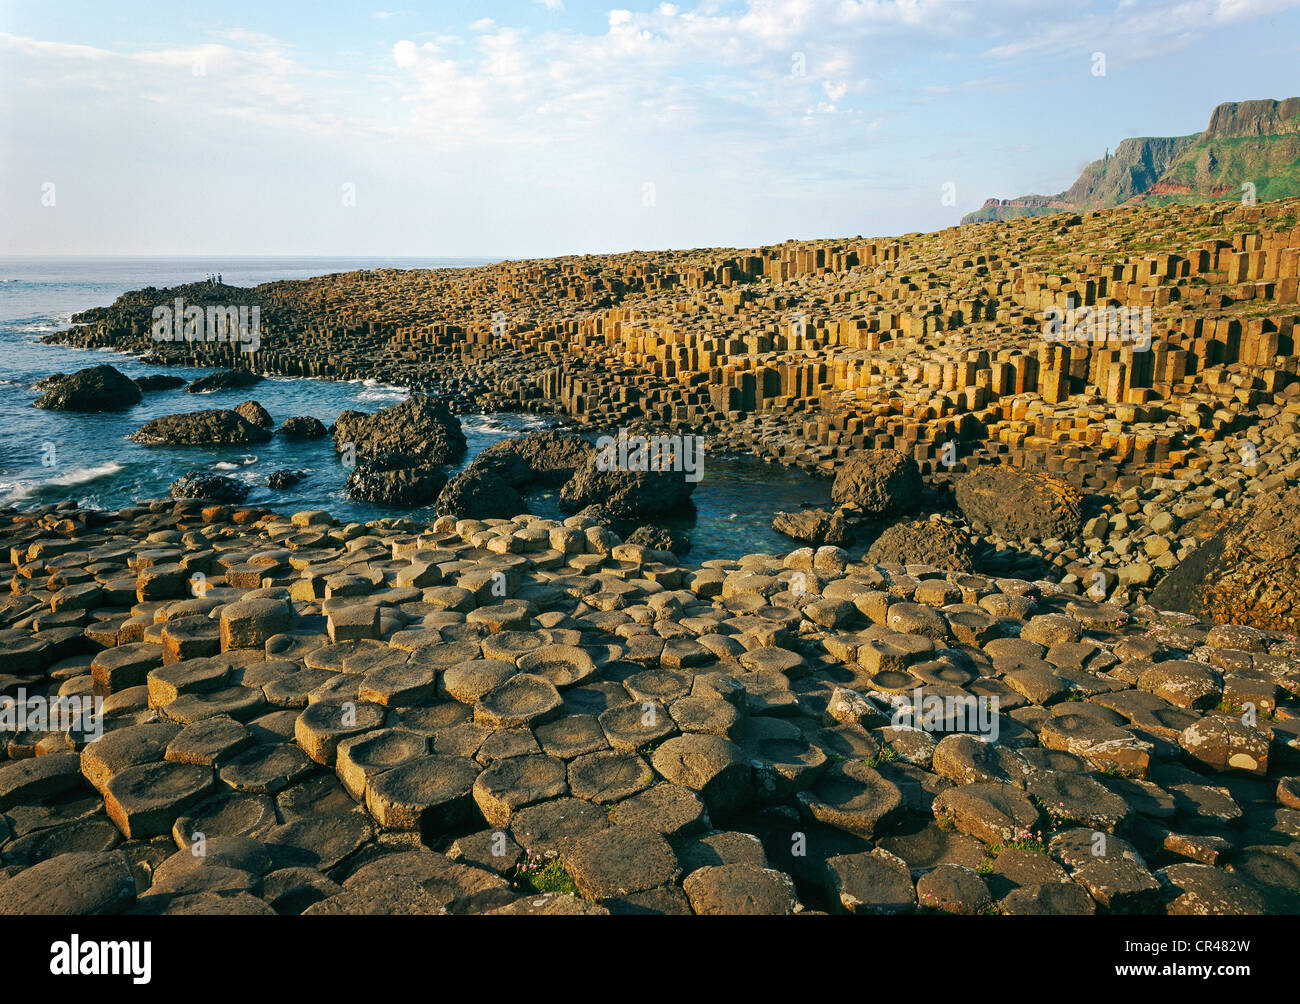 Giant's Causeway, County Antrim, Northern Ireland, United Kingdom, Europe - Stock Image